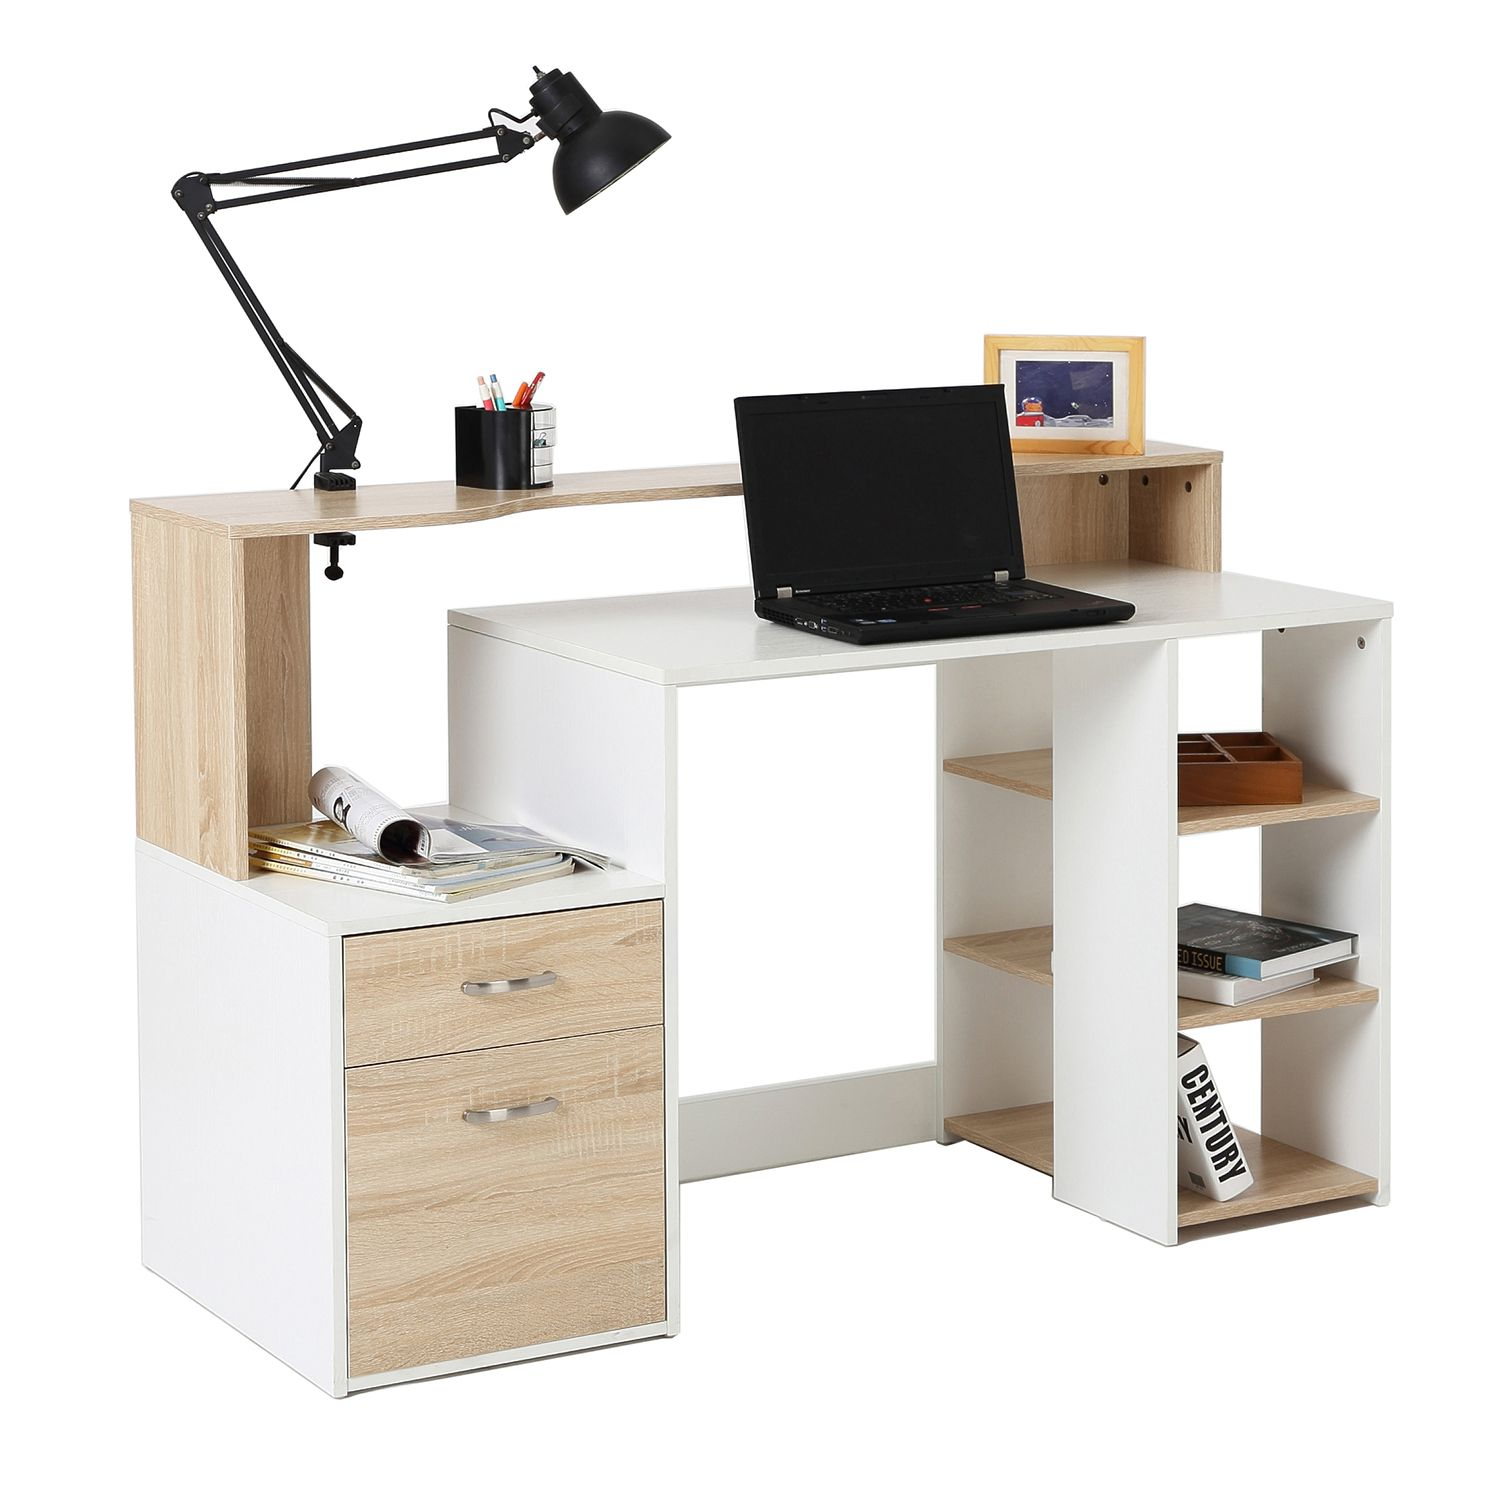 Homcom White And Wood Desk Wooden Computer Desk 140lx55dx92h Cm Modern Home Office Writing Workstation Fur Wooden Computer Desks Modern Computer Desk Furniture Desk with drawers and shelves